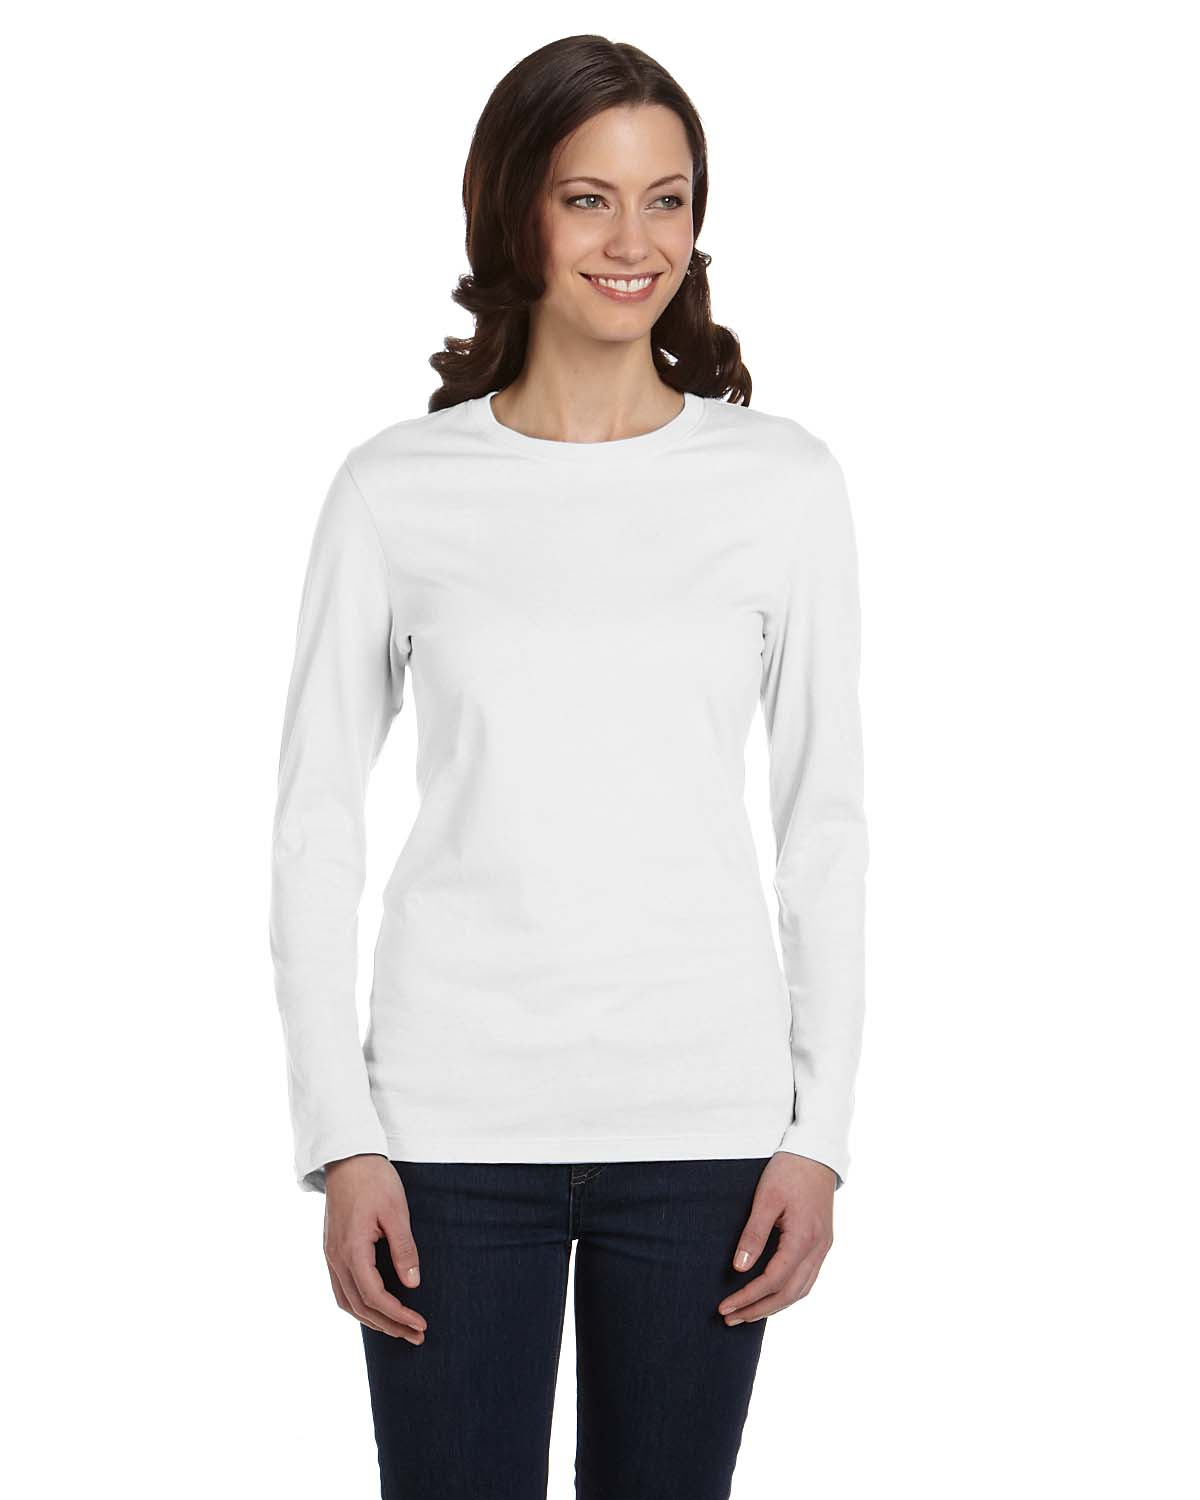 Design women's long sleeve t-shirts with fast turnaround and all inclusive pricing. Featuring high quality t-shirt printing, design ideas, Free Shipping and Live Help.